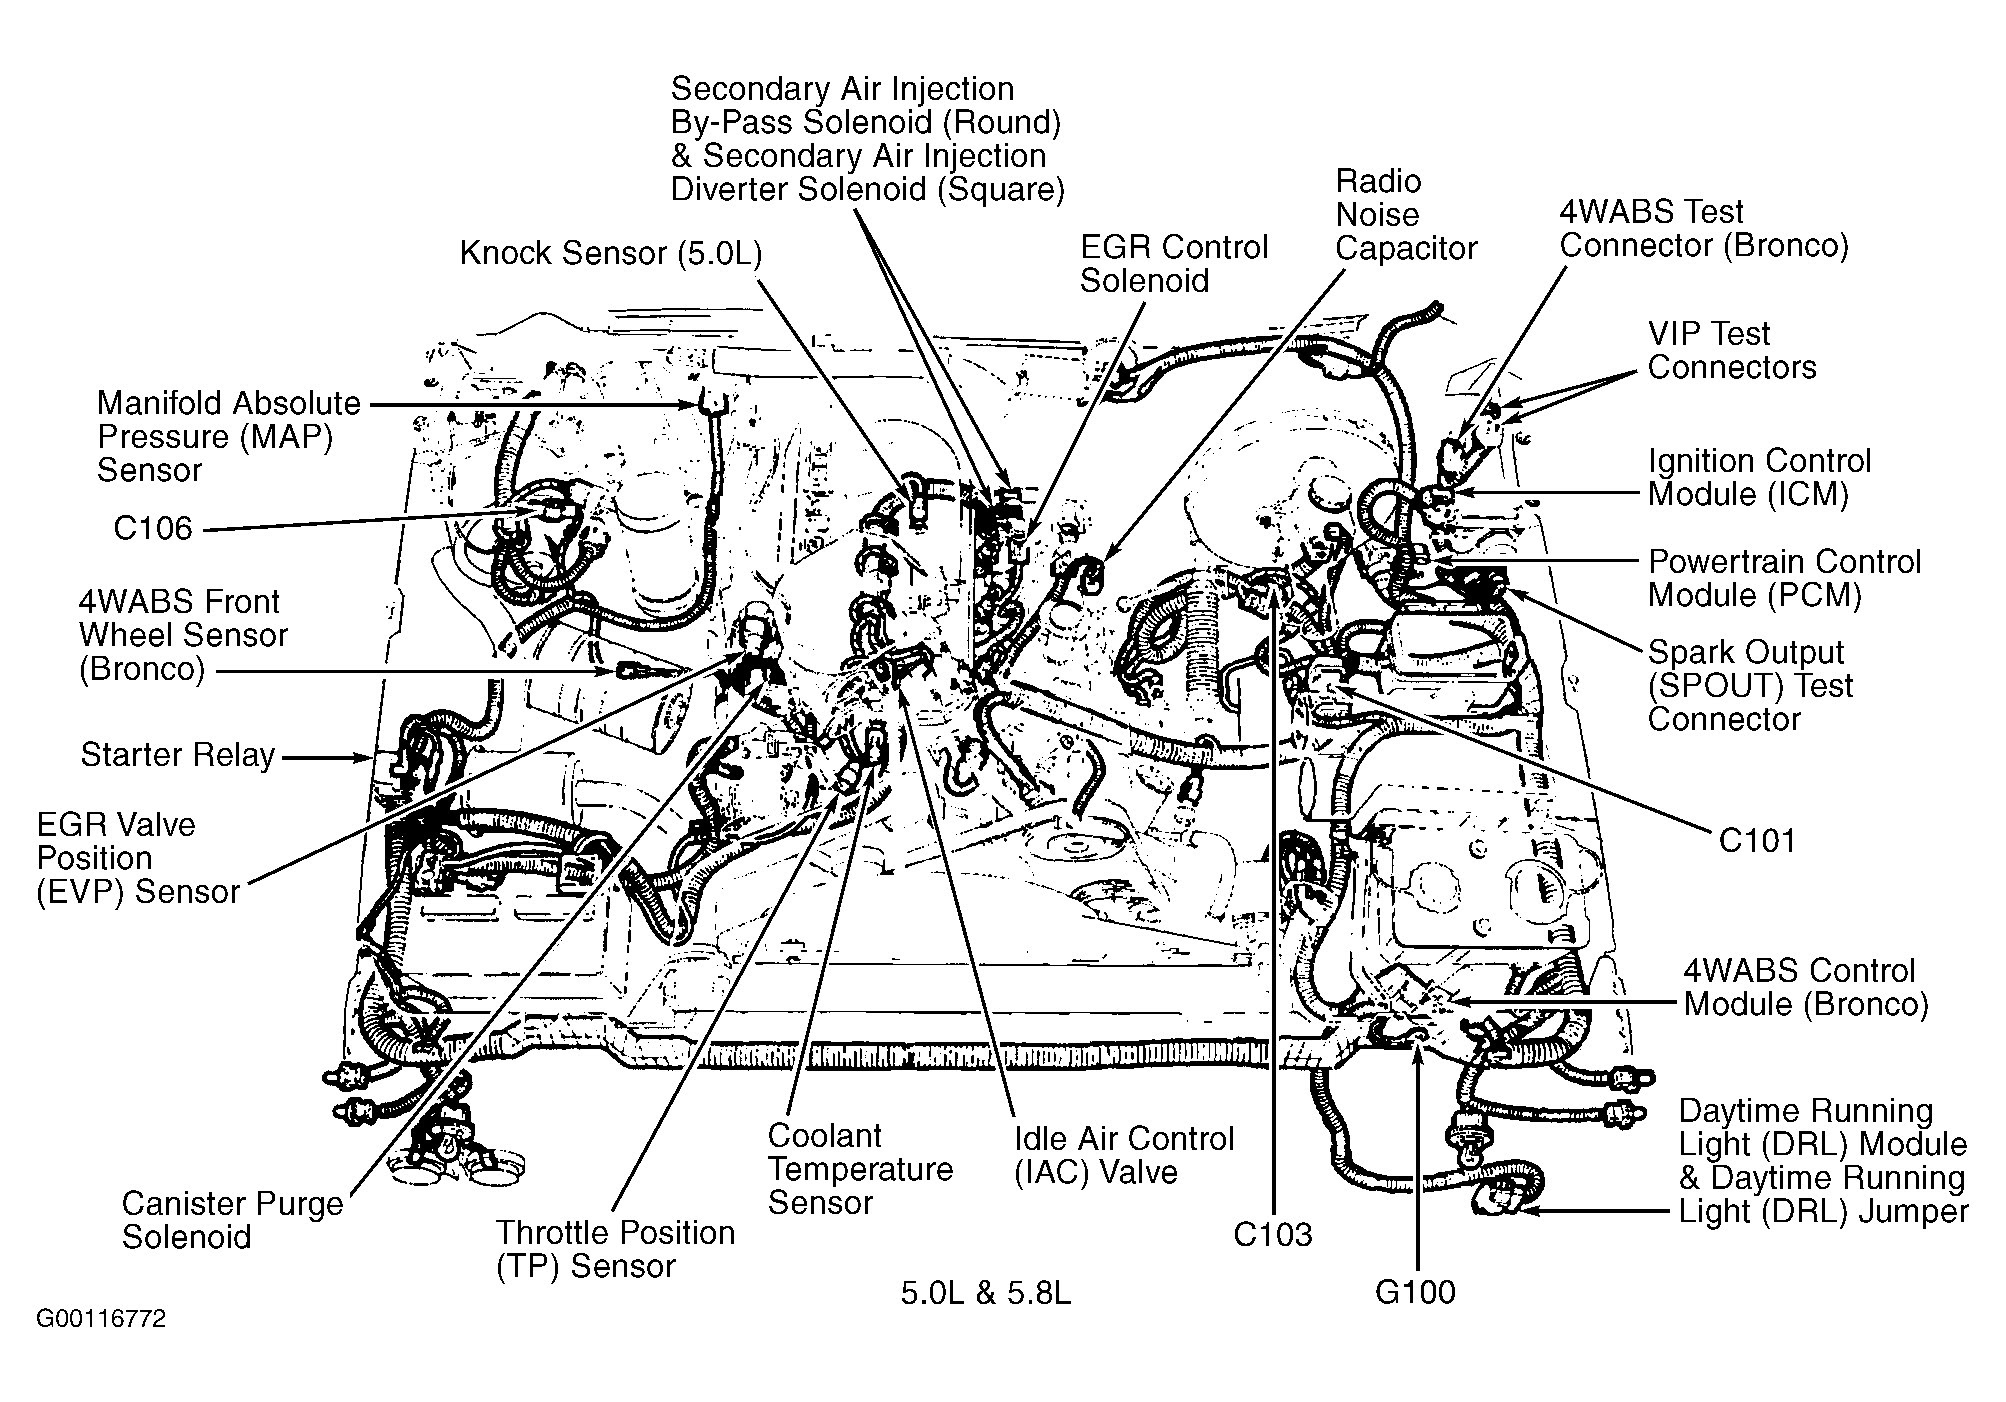 1975 Ford 302 Engine Diagram - Wiring Diagram Models slim-applied -  slim-applied.zeevaproduction.it | 1979 V8 Ford Engine Diagram |  | slim-applied.zeevaproduction.it